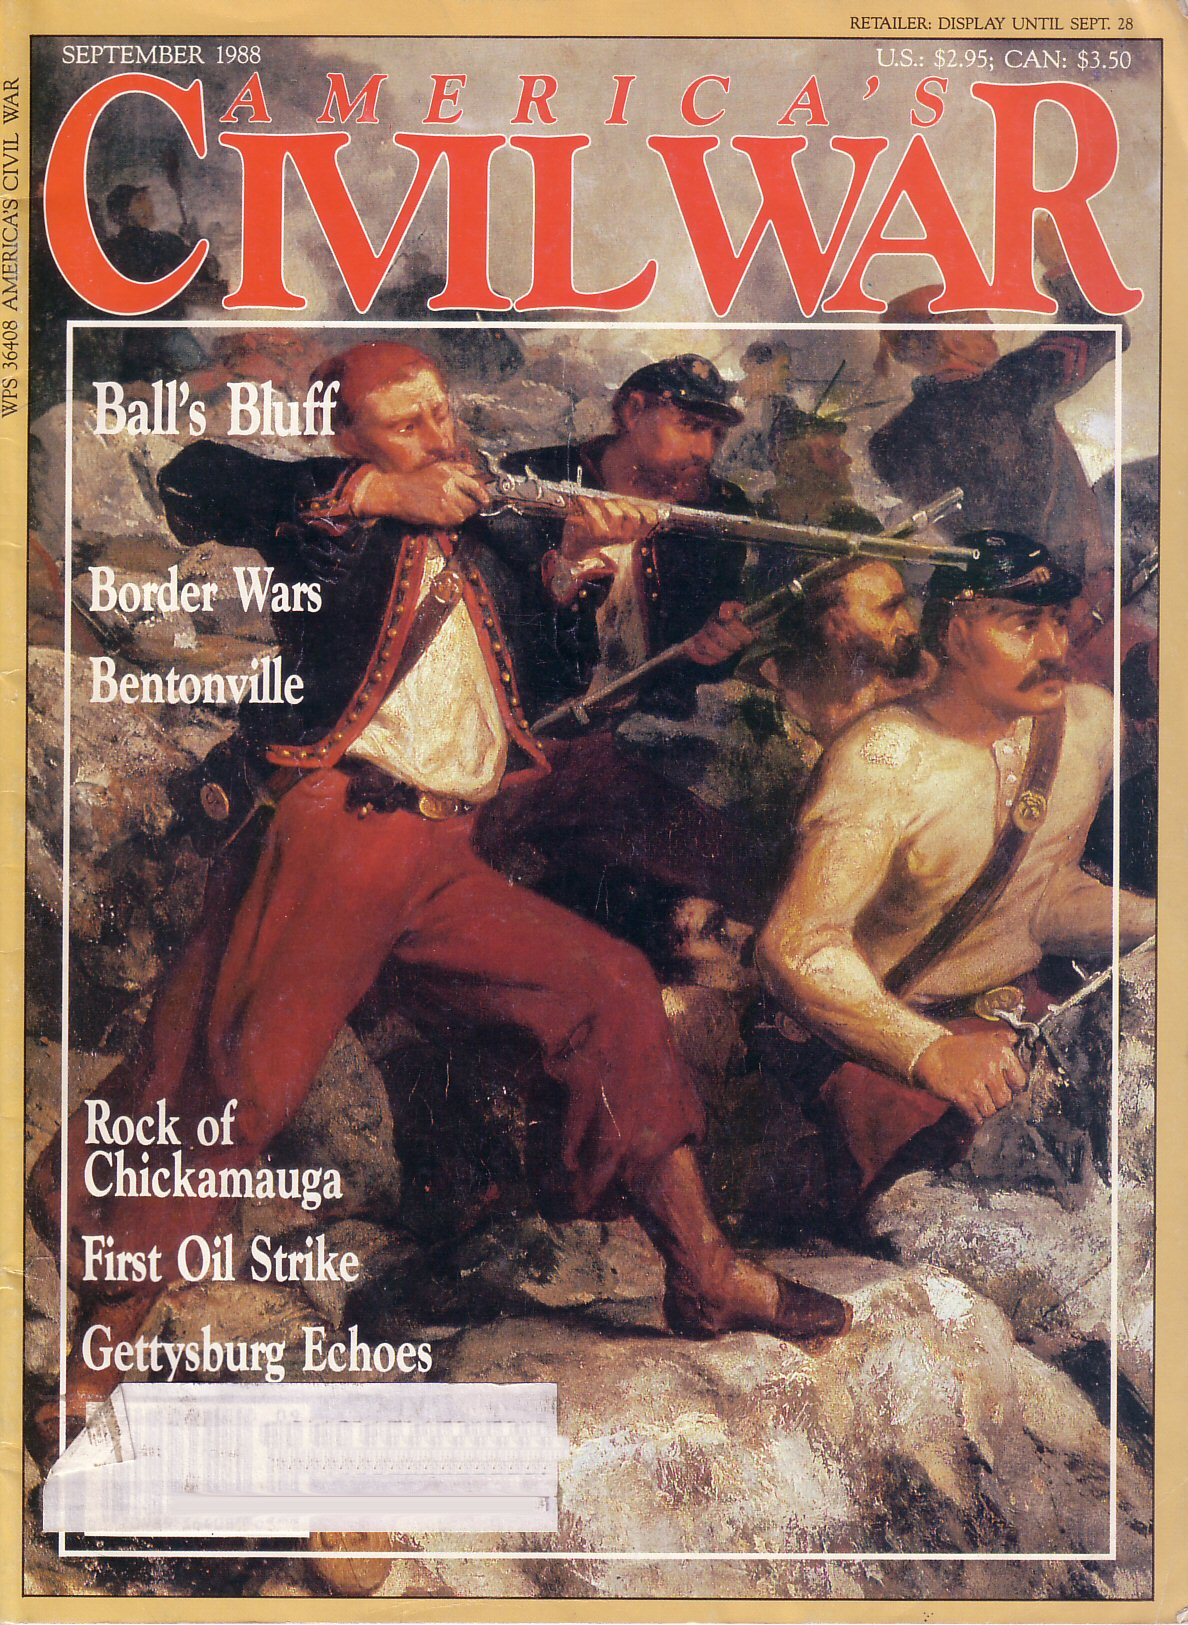 Americas Civil War, Volume 1, Number 3 (September 1988)